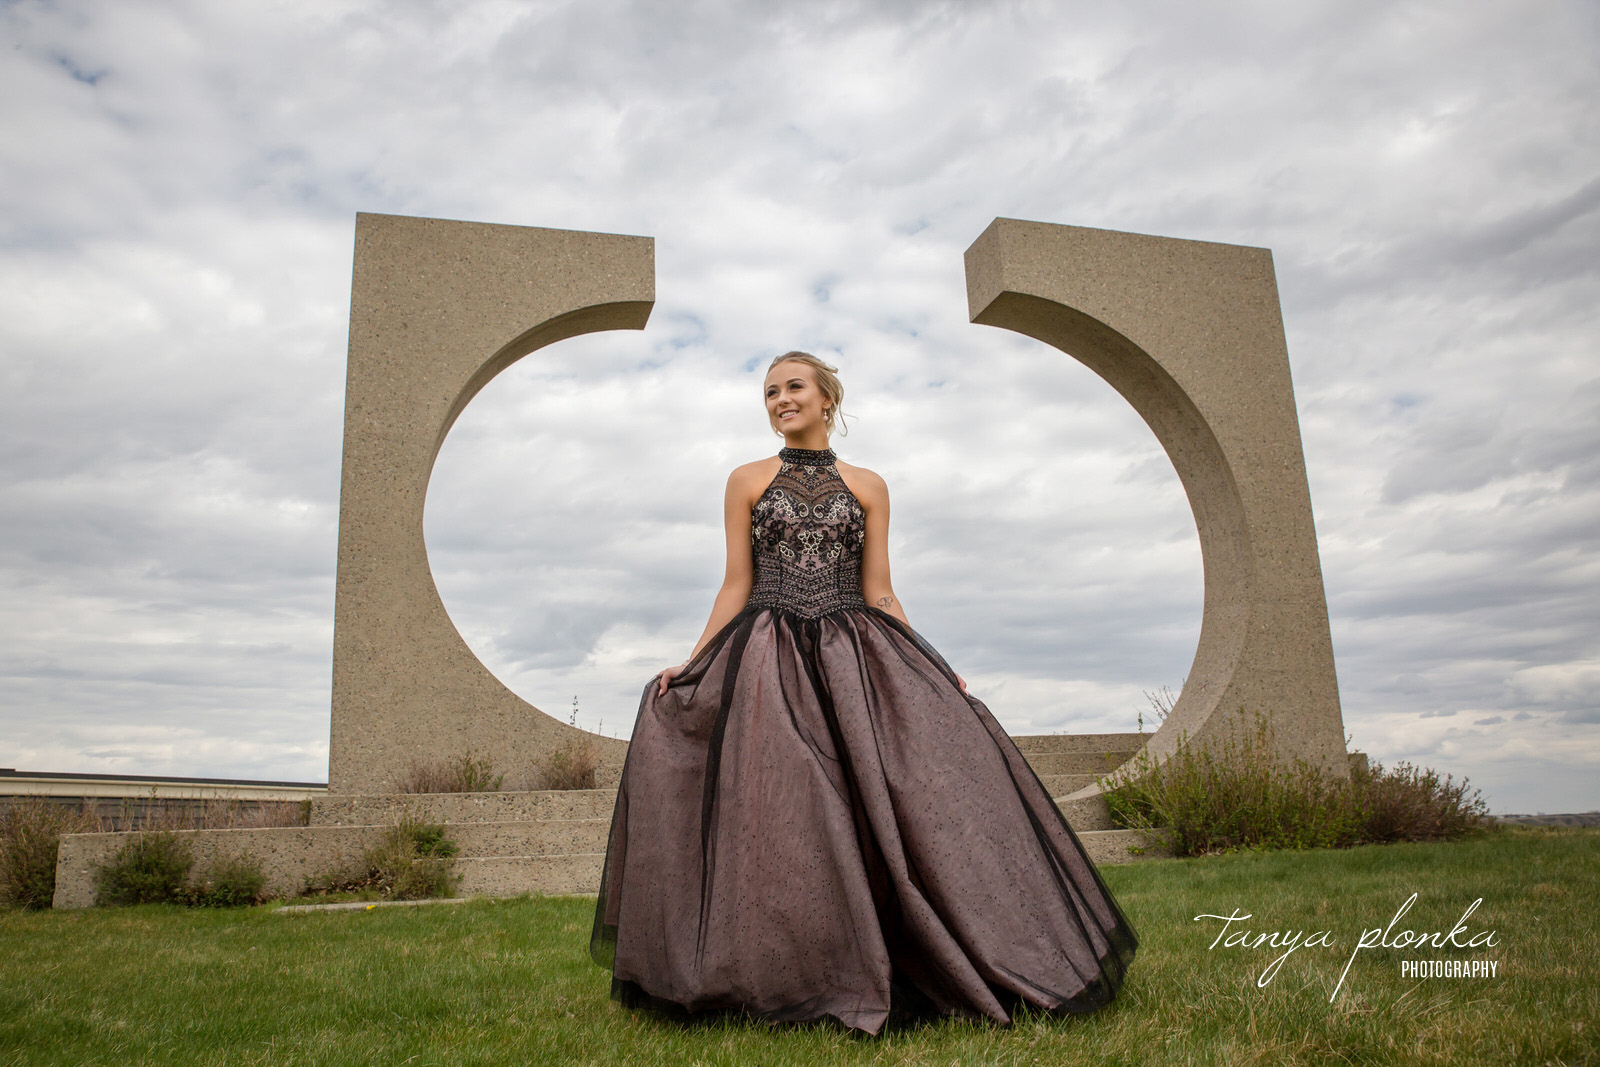 high school grad in purple dress in front of university aperture sculpture